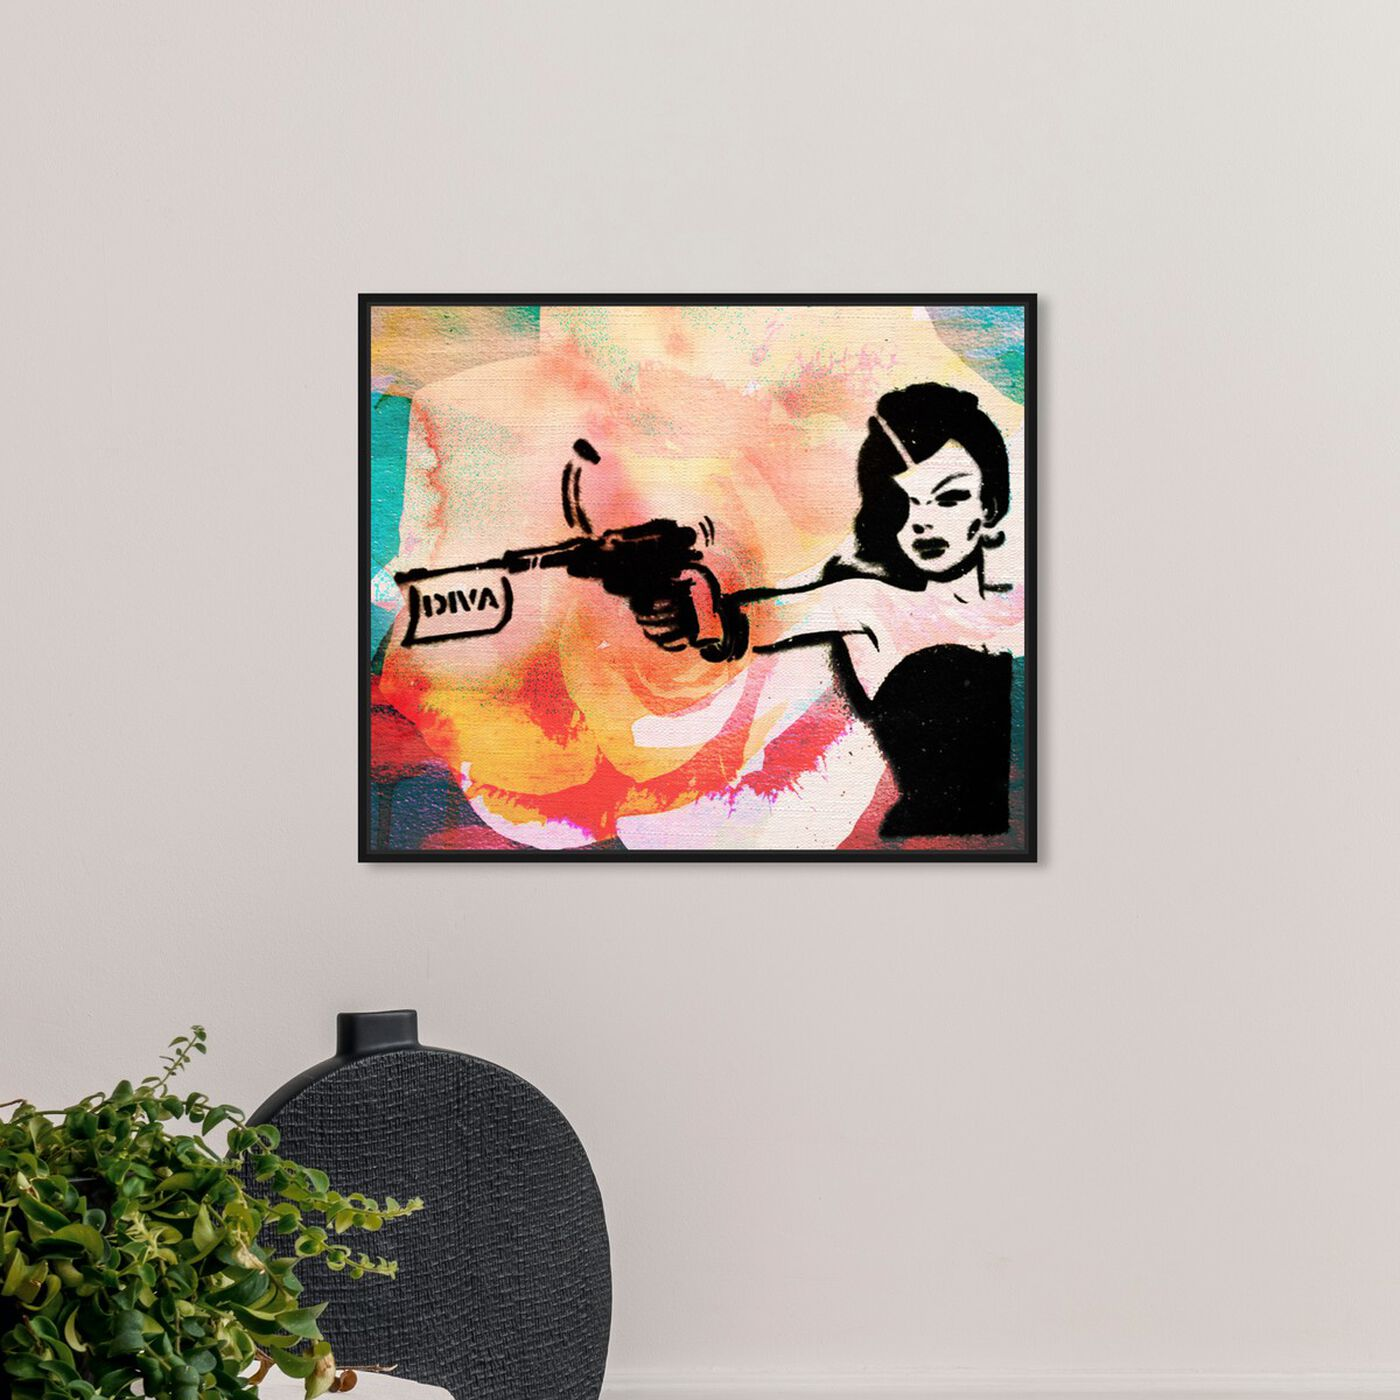 Hanging view of DIVA featuring entertainment and hobbies and machine guns art.